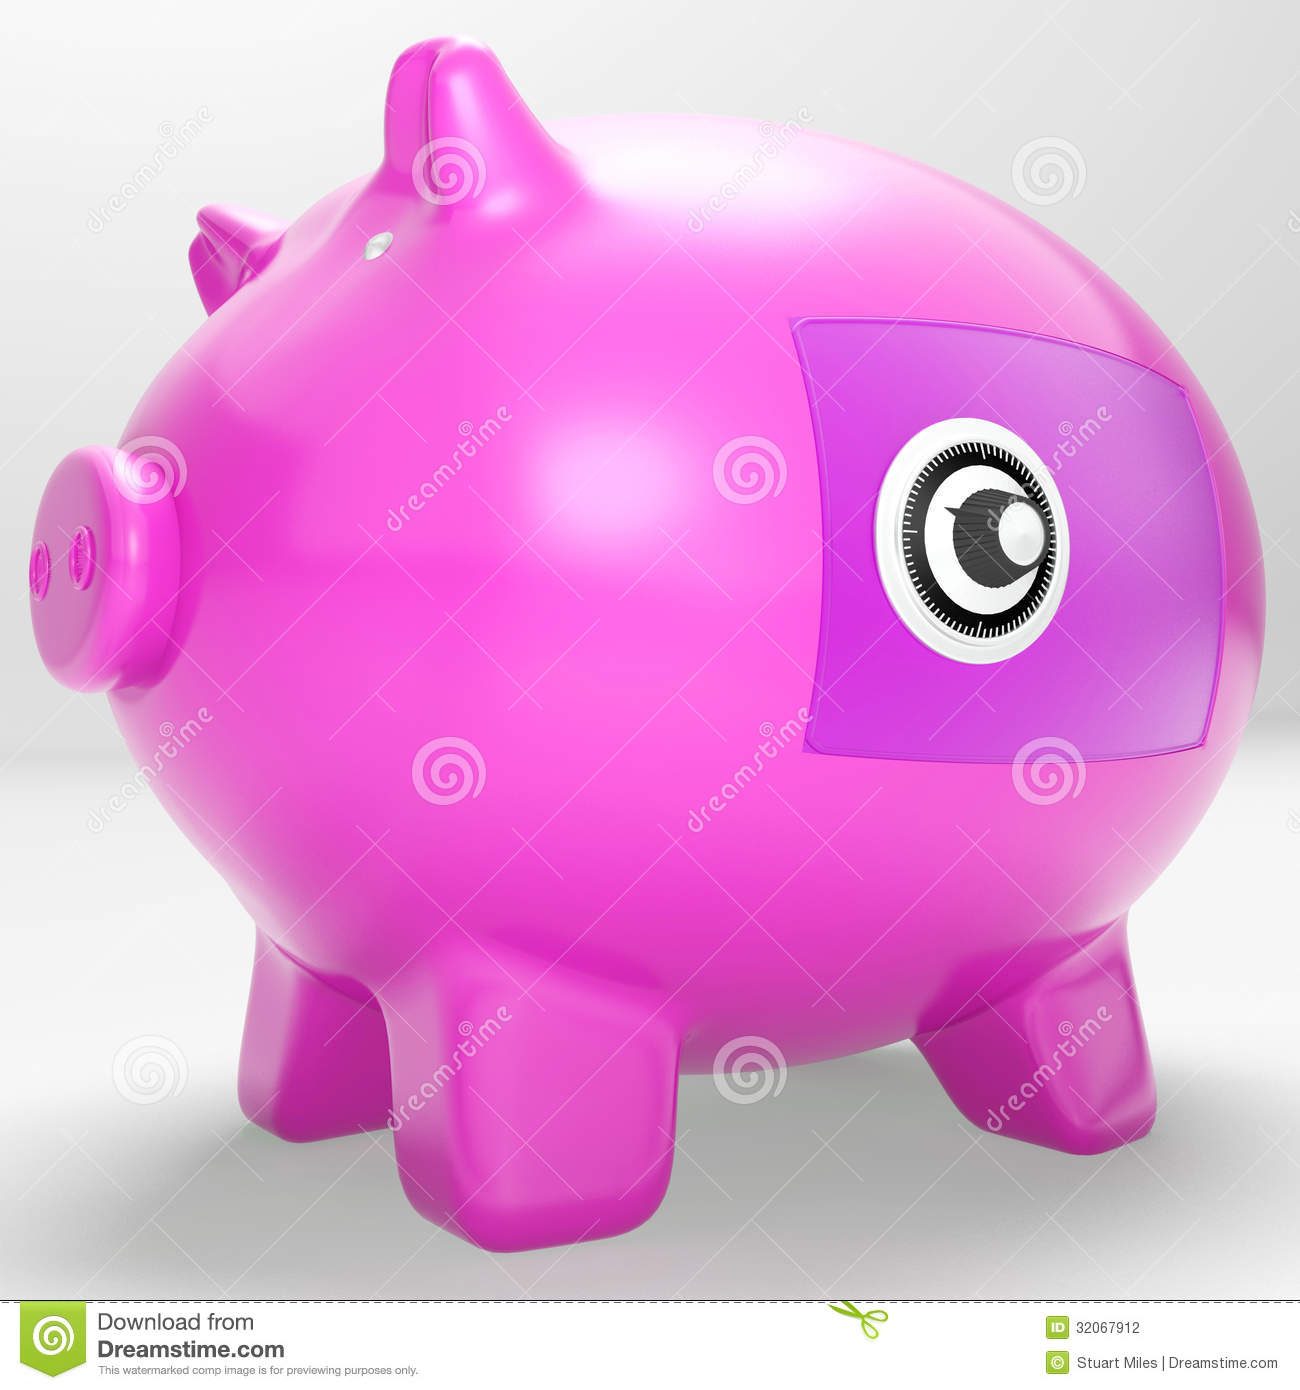 Piggy Banks With Locks Locked Piggy Bank Theft Royalty Free Stock Image